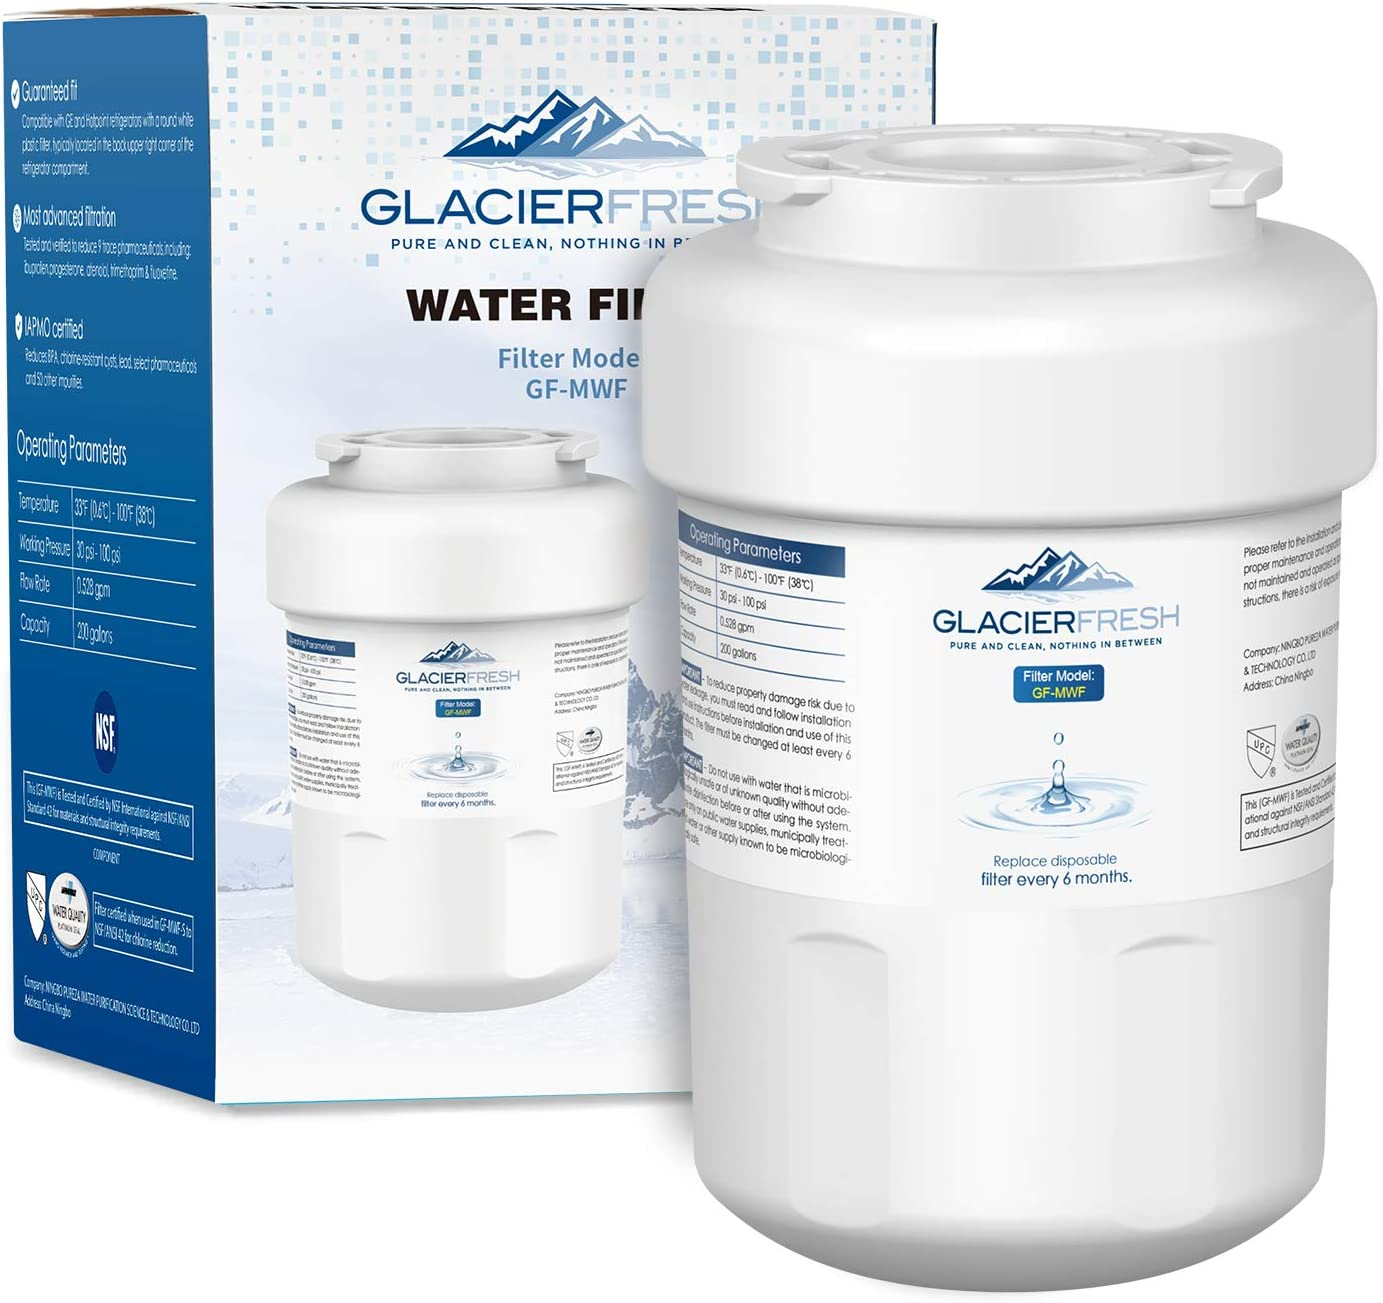 MWFWaterFilterReplacementforGERefrigerator, GLACIER FRESH NSF 42 Certified Cartridges Compatible with GE MWF SmartWater, MWFA, MWFP, GWF, GWFA, Kenmore 9991, 46-9991, HDX FMG-1, WFC1201, 1 Pack: Home Improvement